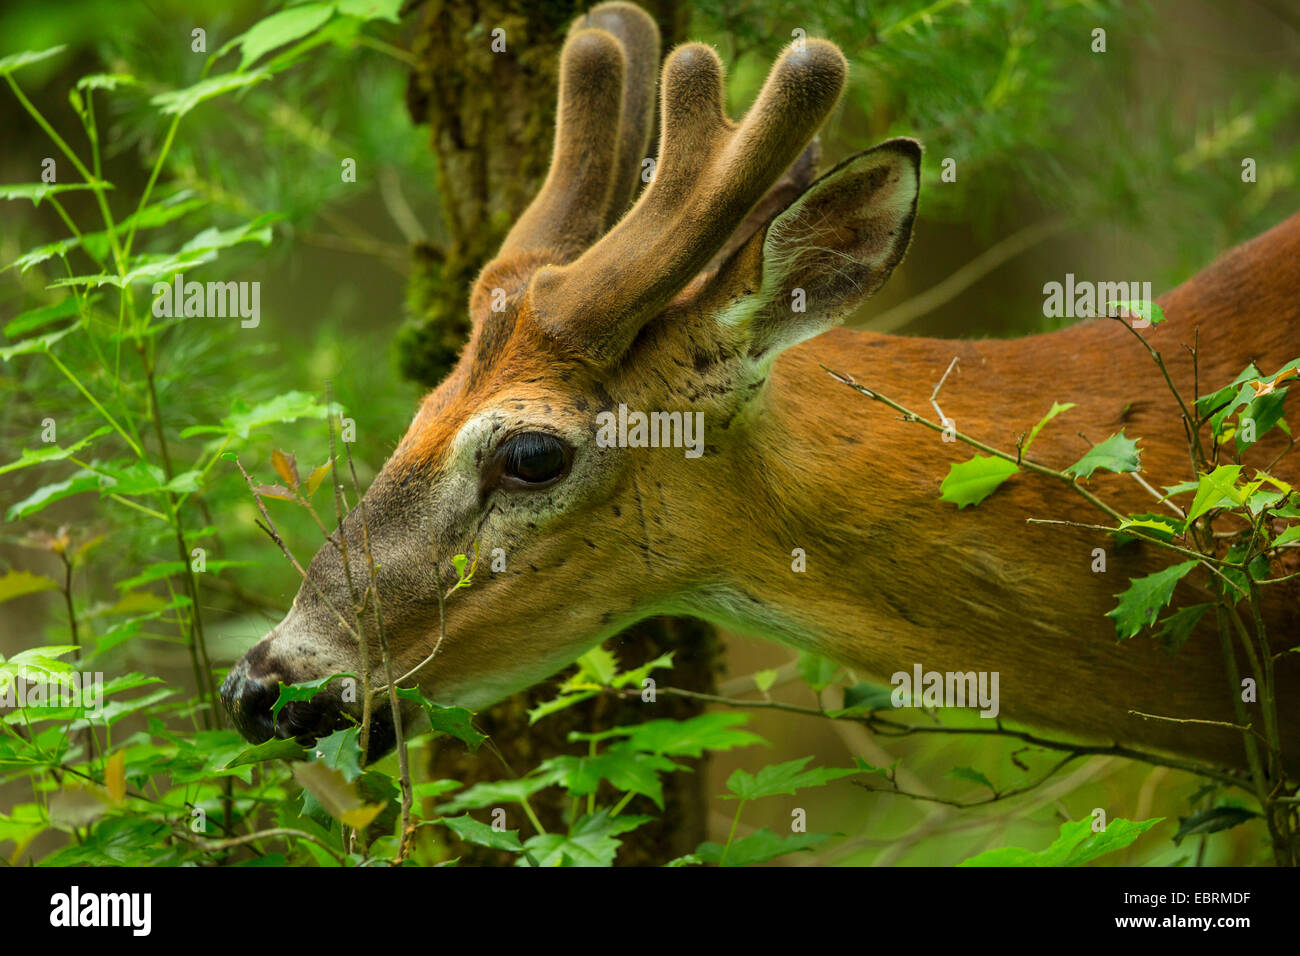 White-tailed deer (Odocoileus virginianus), browsing, portrait with antler in neoformation of the velvet, USA, Tennessee, - Stock Image